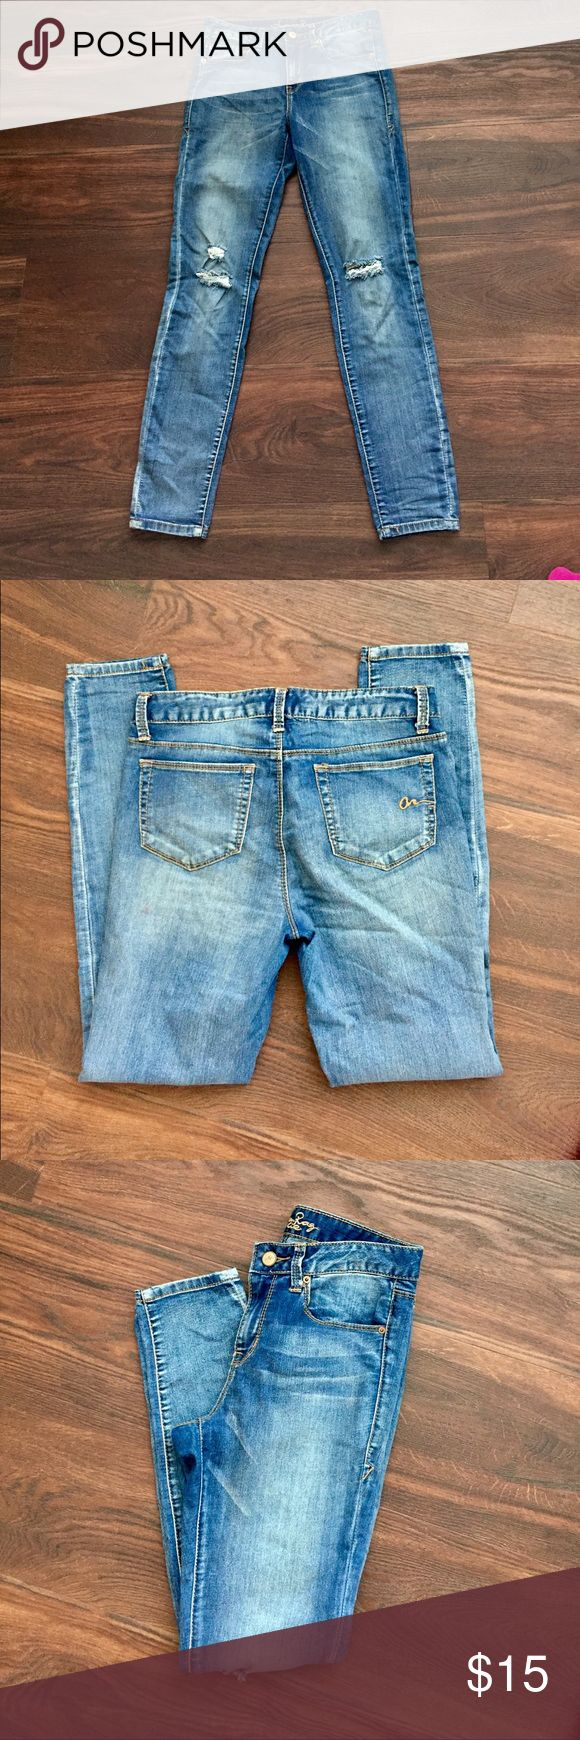 Skinny Jeans Super stretch jeans. They fit high waisted. Really comfortable jeans!! American Rag Jeans Skinny